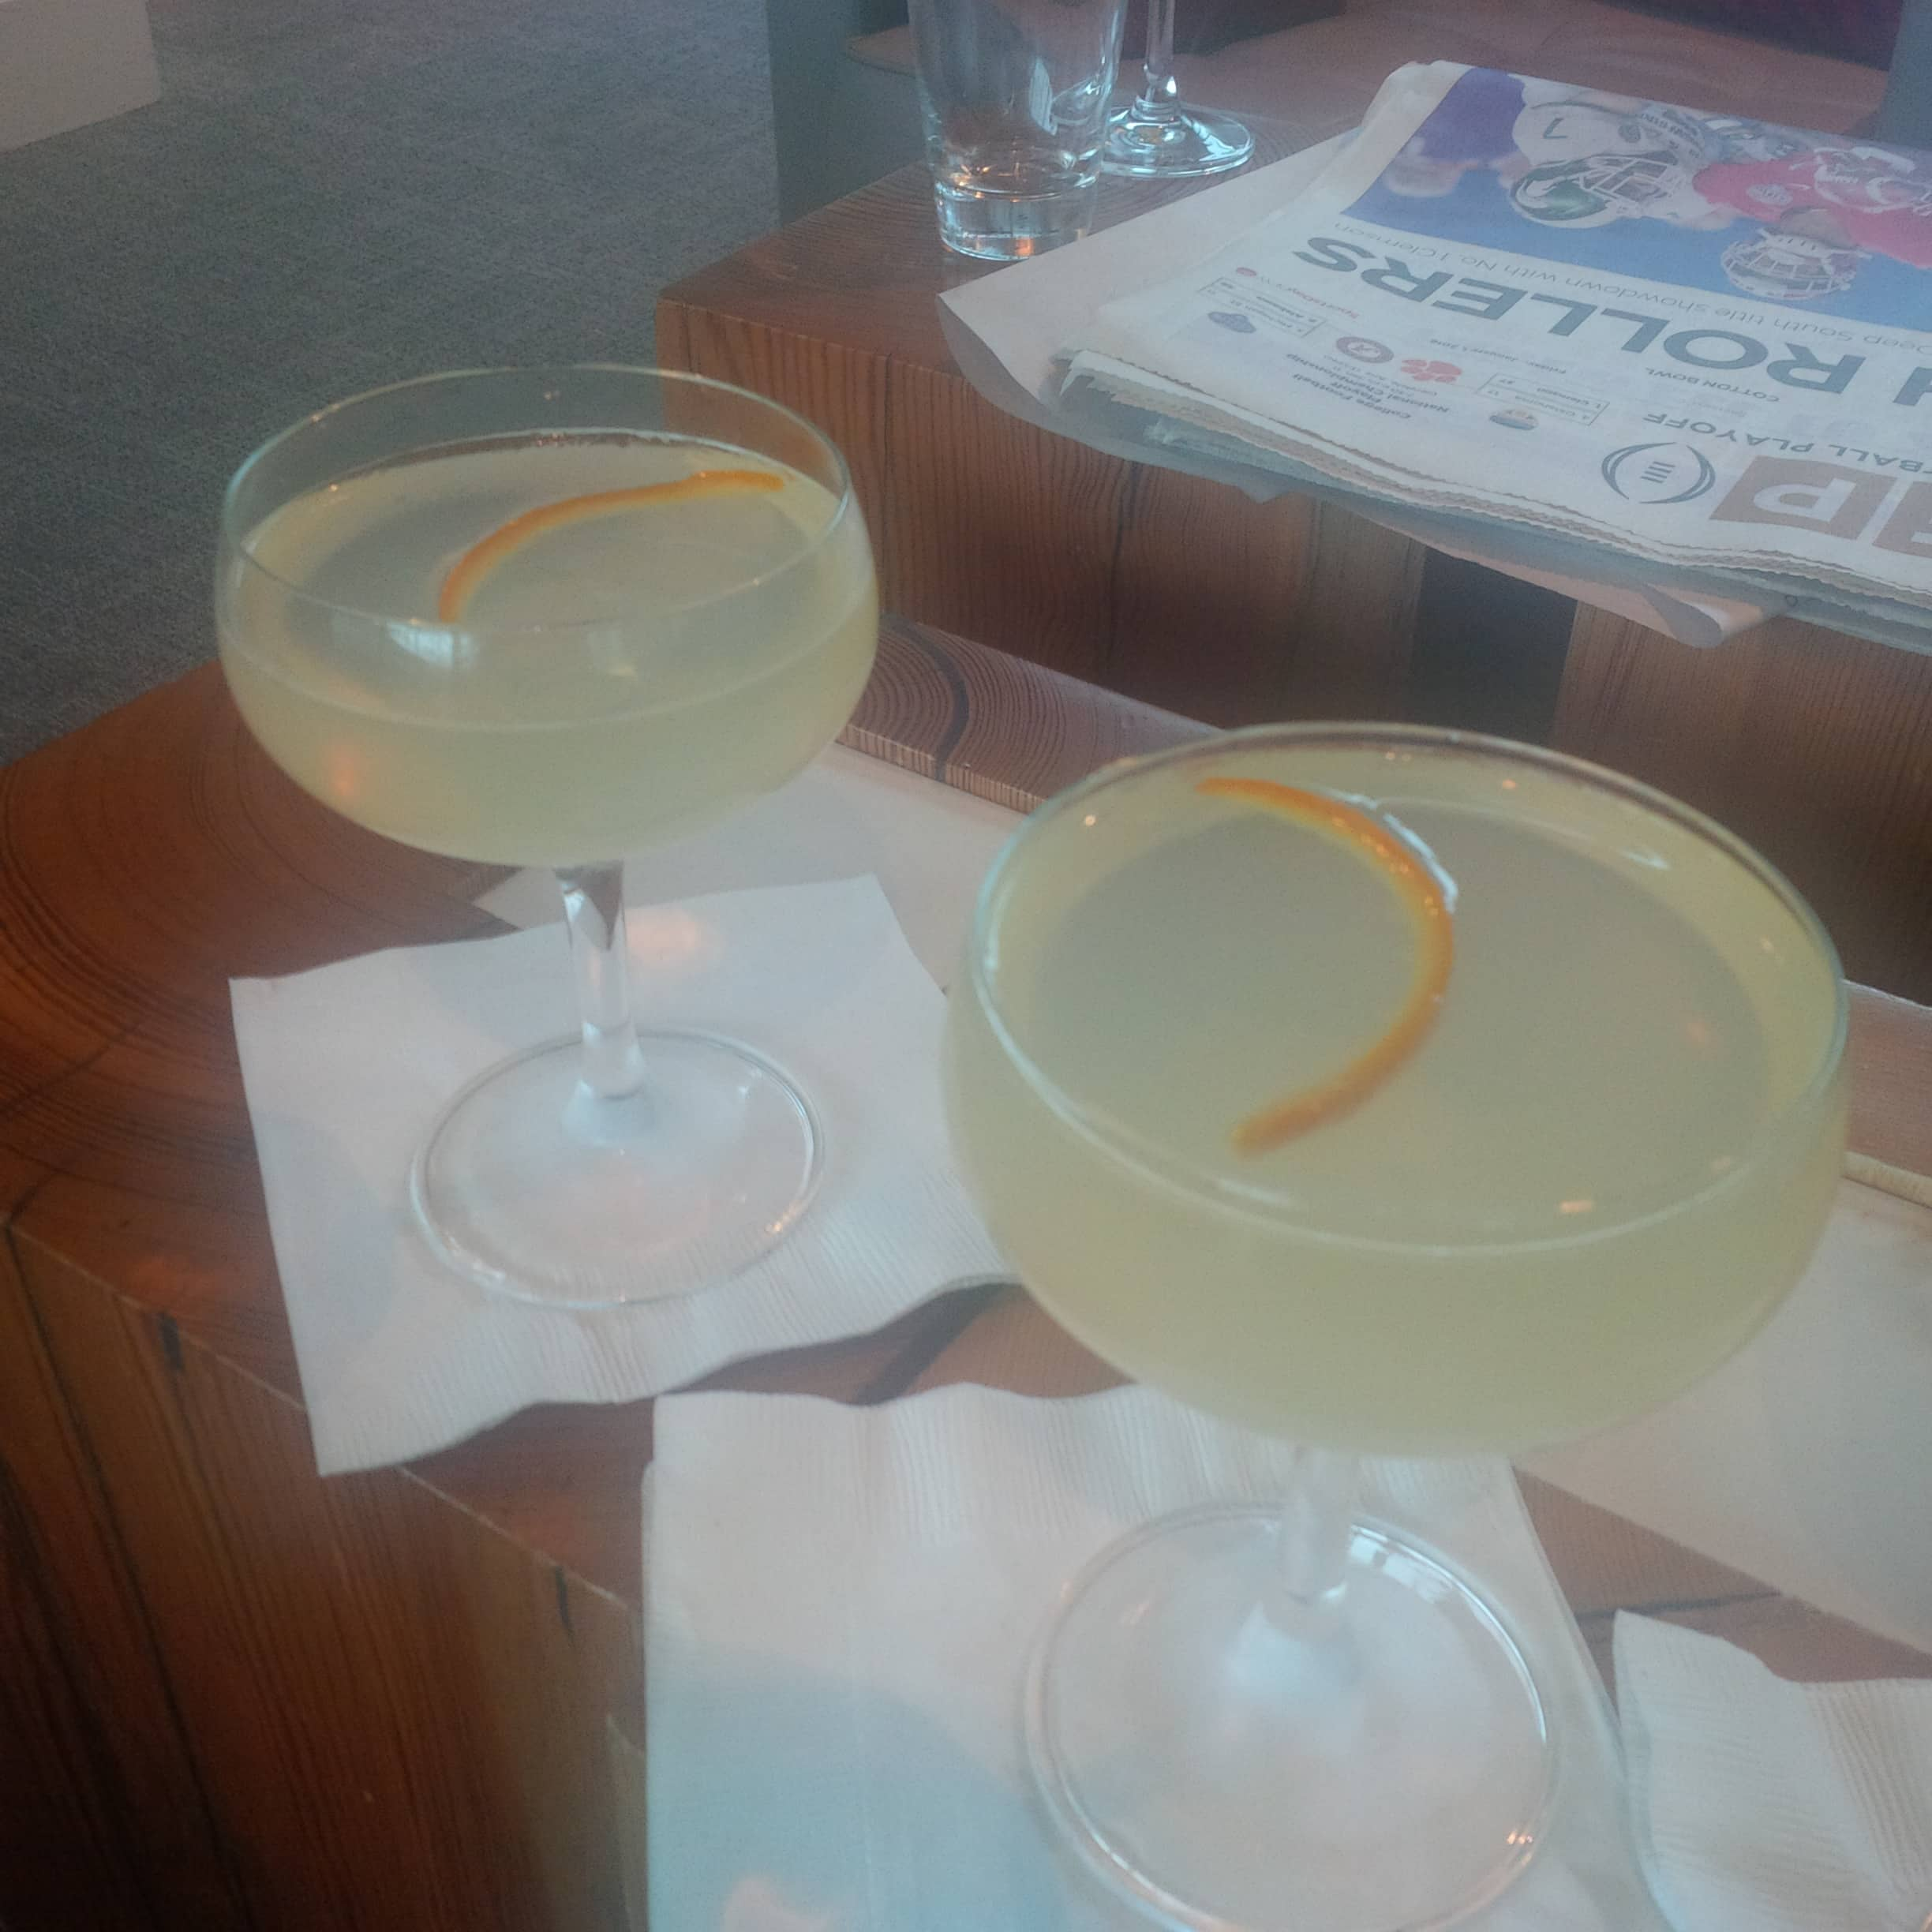 DFW Centurion Lounge – Make the Best of a Long Layover